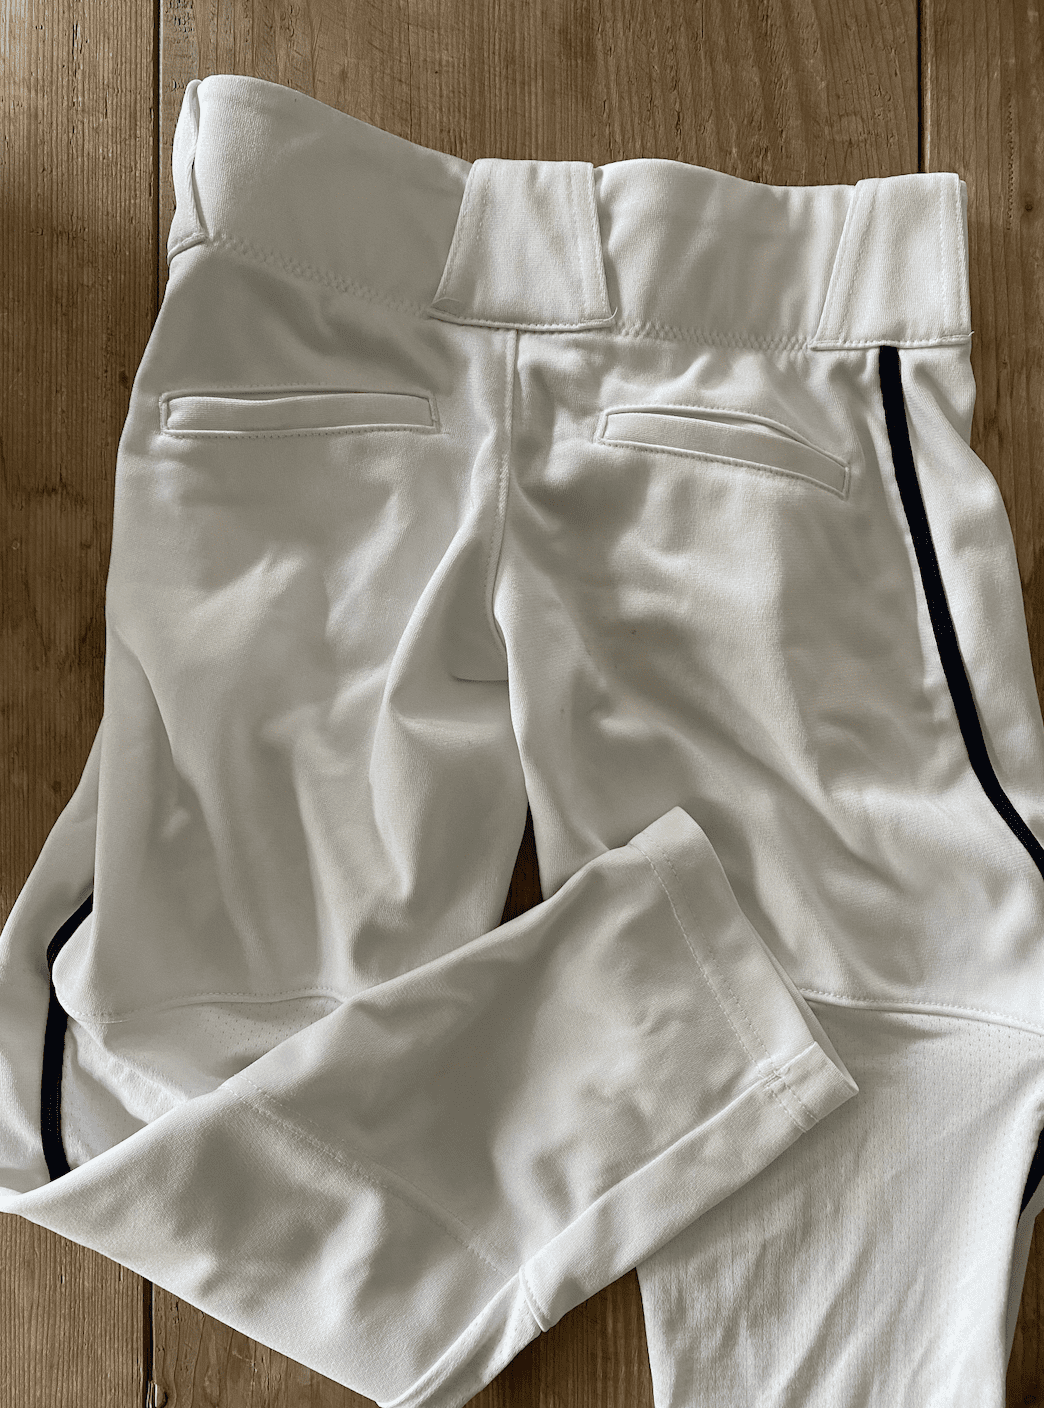 how to get red clay out of baseball pants